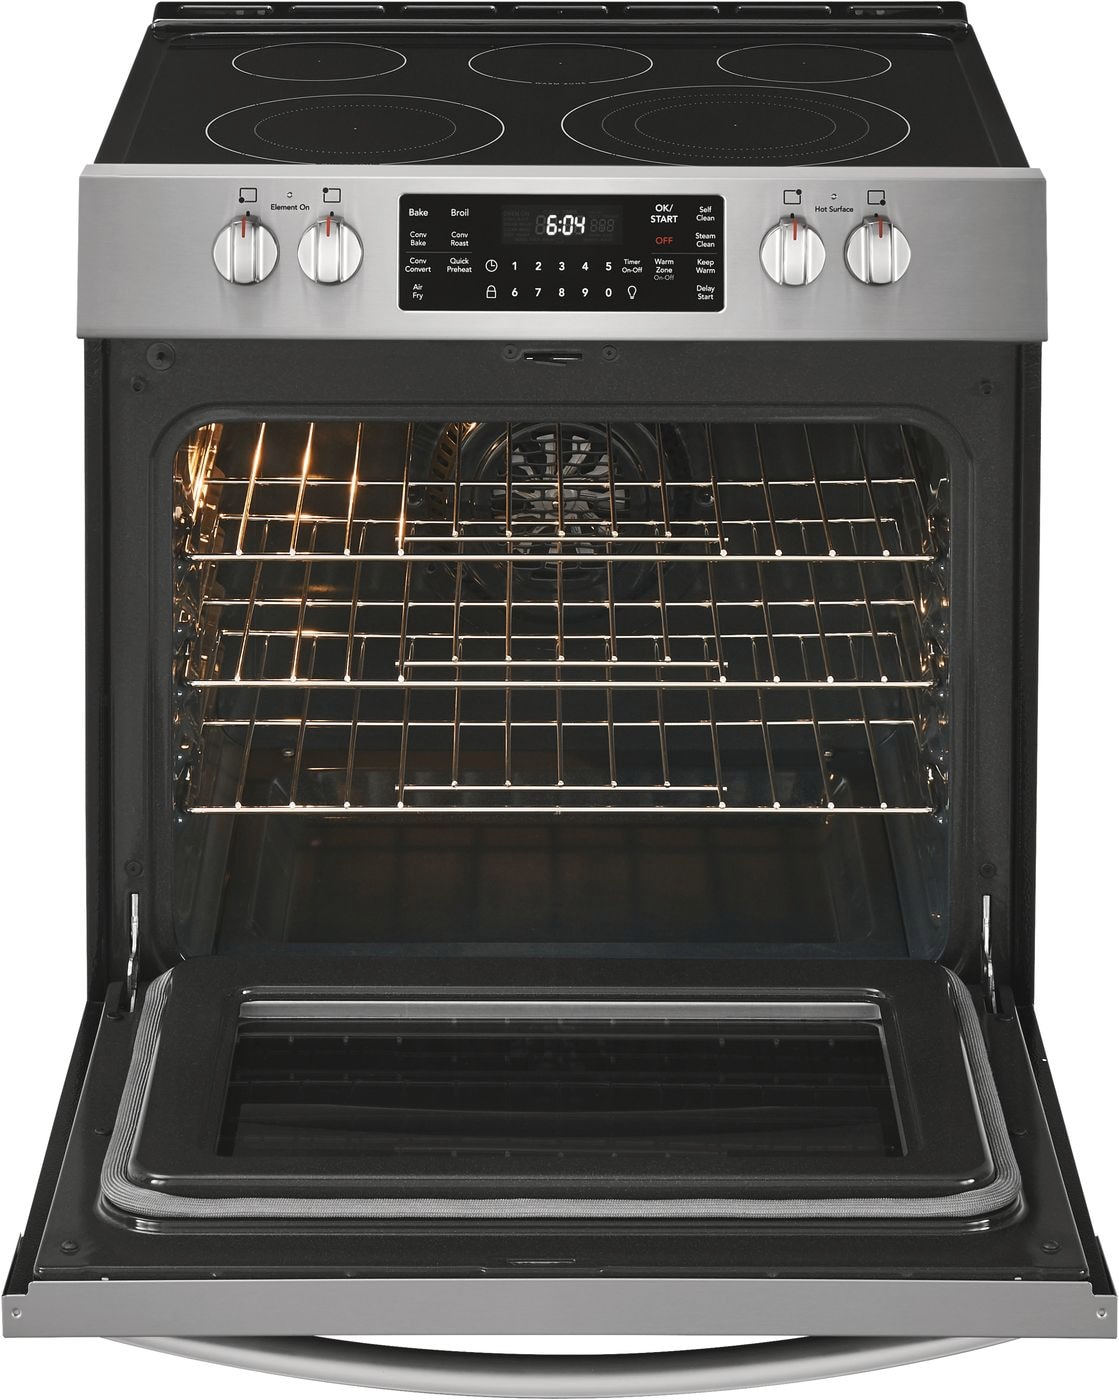 "Model: FGEH3047VF | Frigidaire Gallery 30"" Front Control Electric Range with Air Fry"